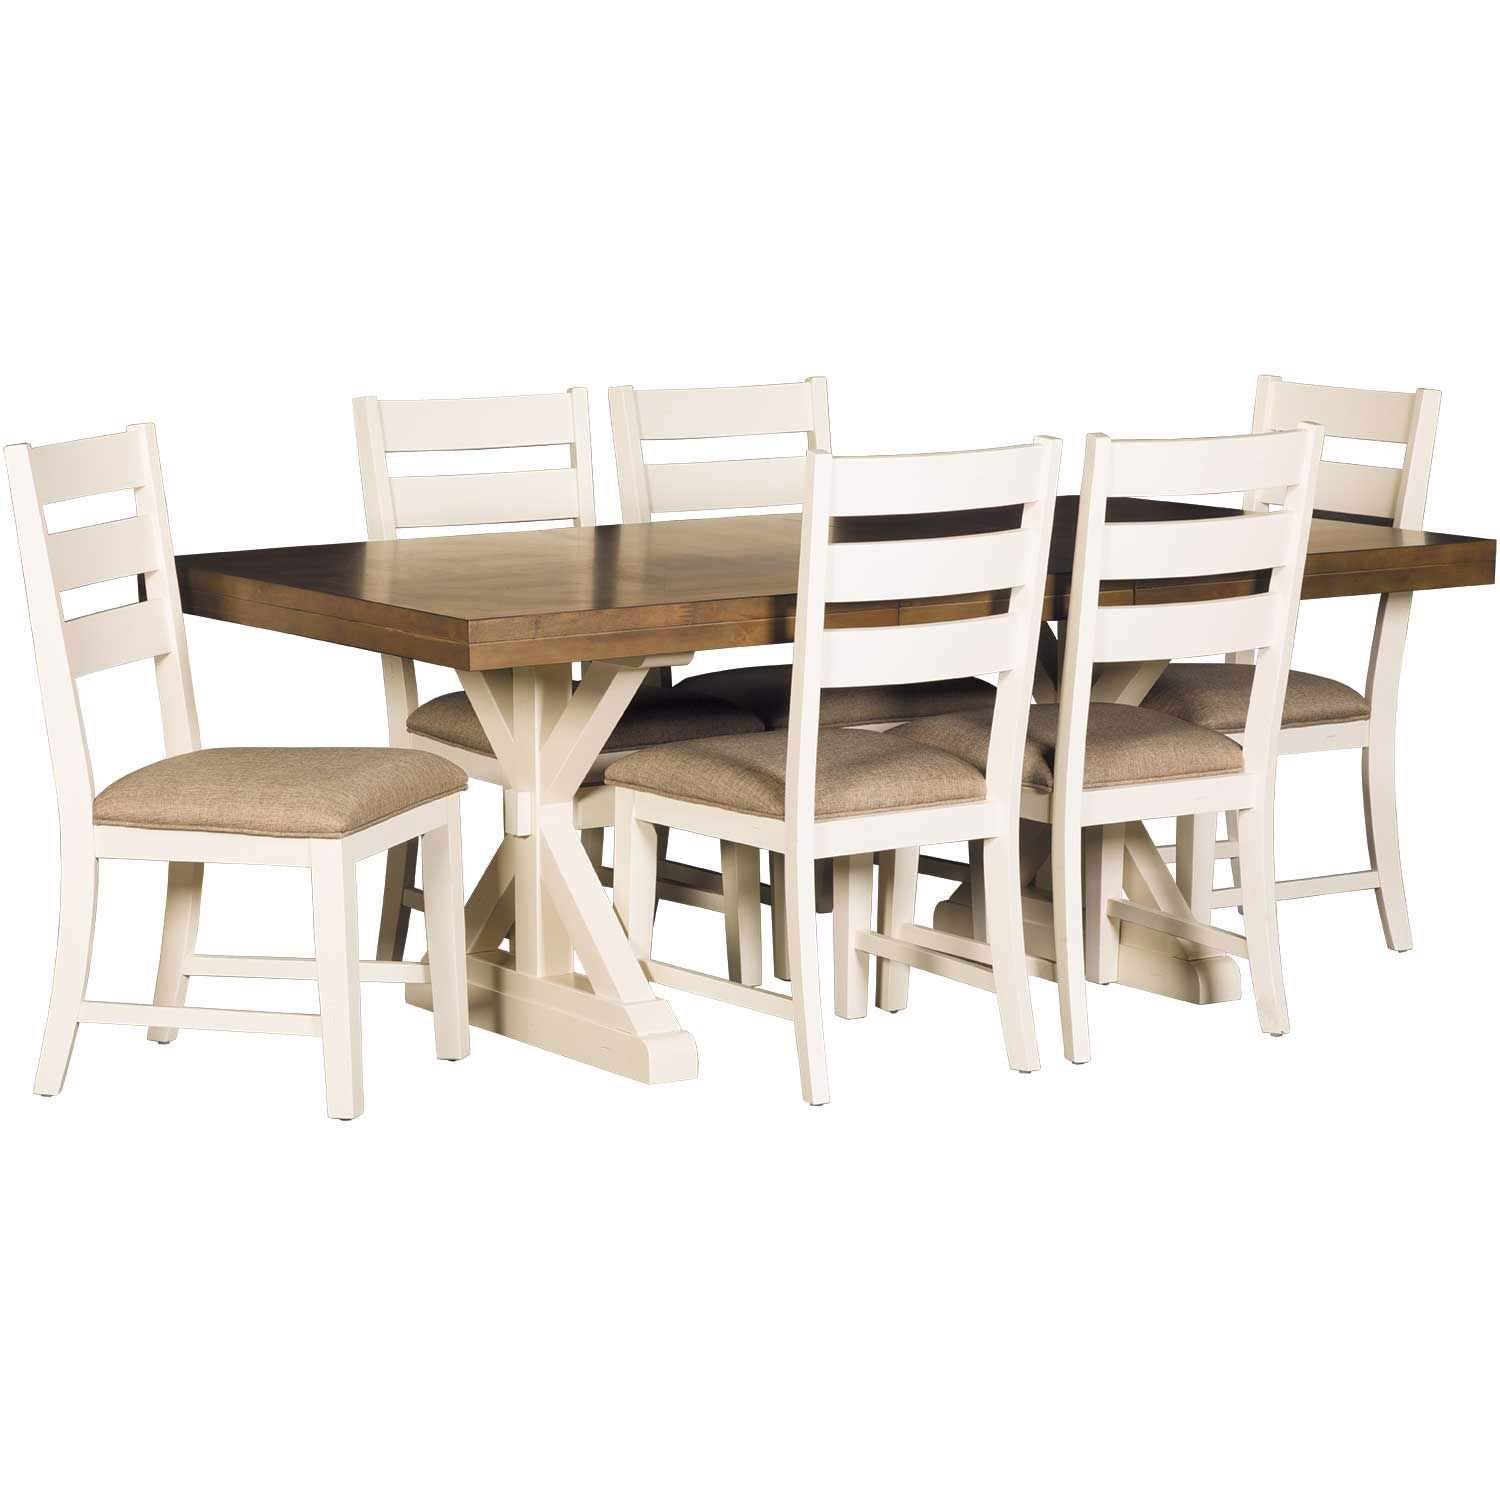 Admirable Park Creek 7 Piece Rectangular Table Set Ibusinesslaw Wood Chair Design Ideas Ibusinesslaworg